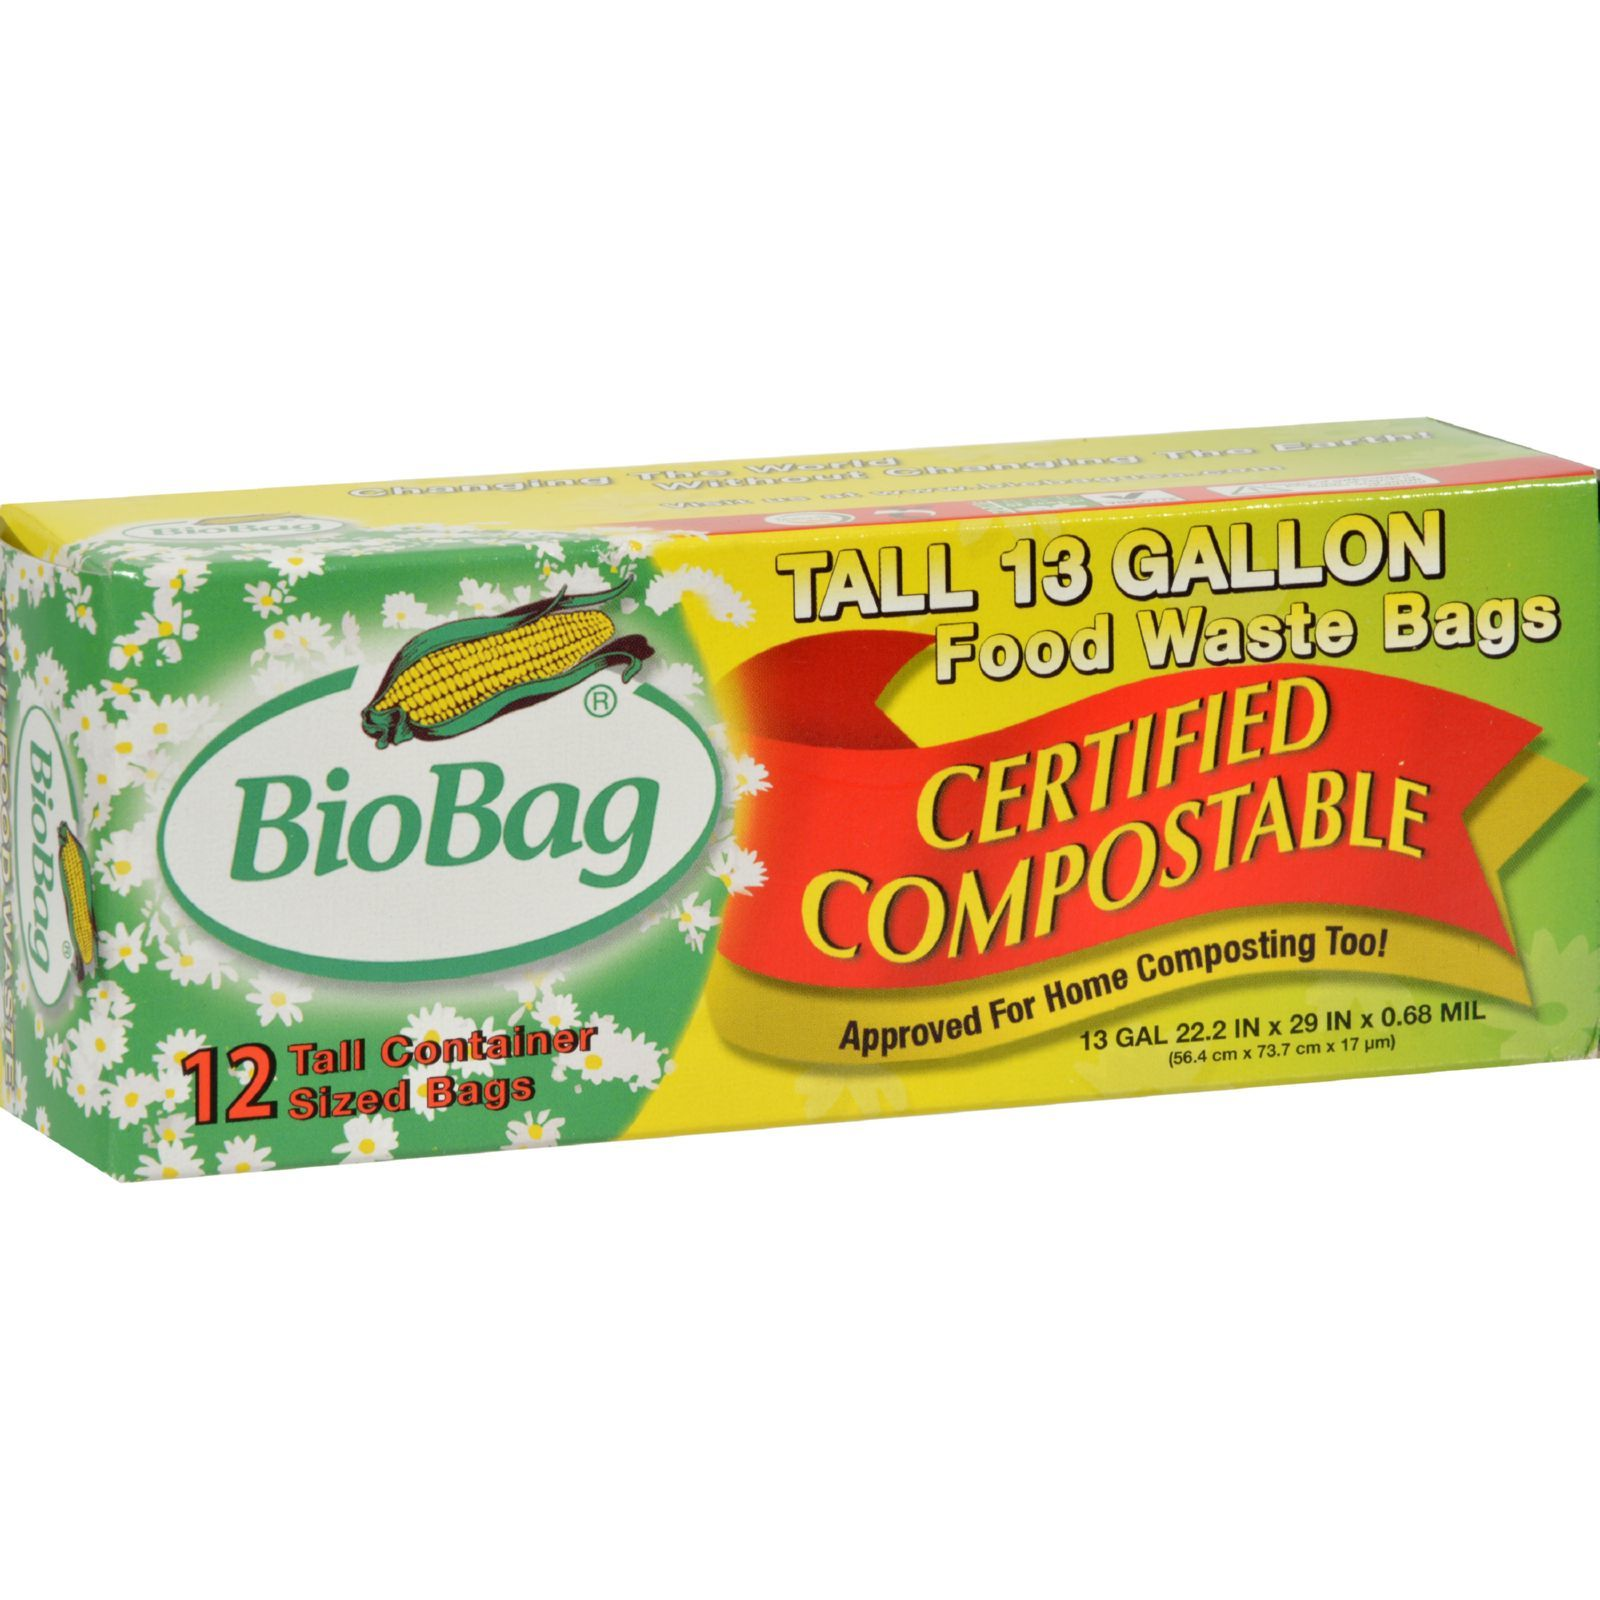 BioBag 13 Gallon Tall Food Waste Bags - Case of 12 - 12 Count